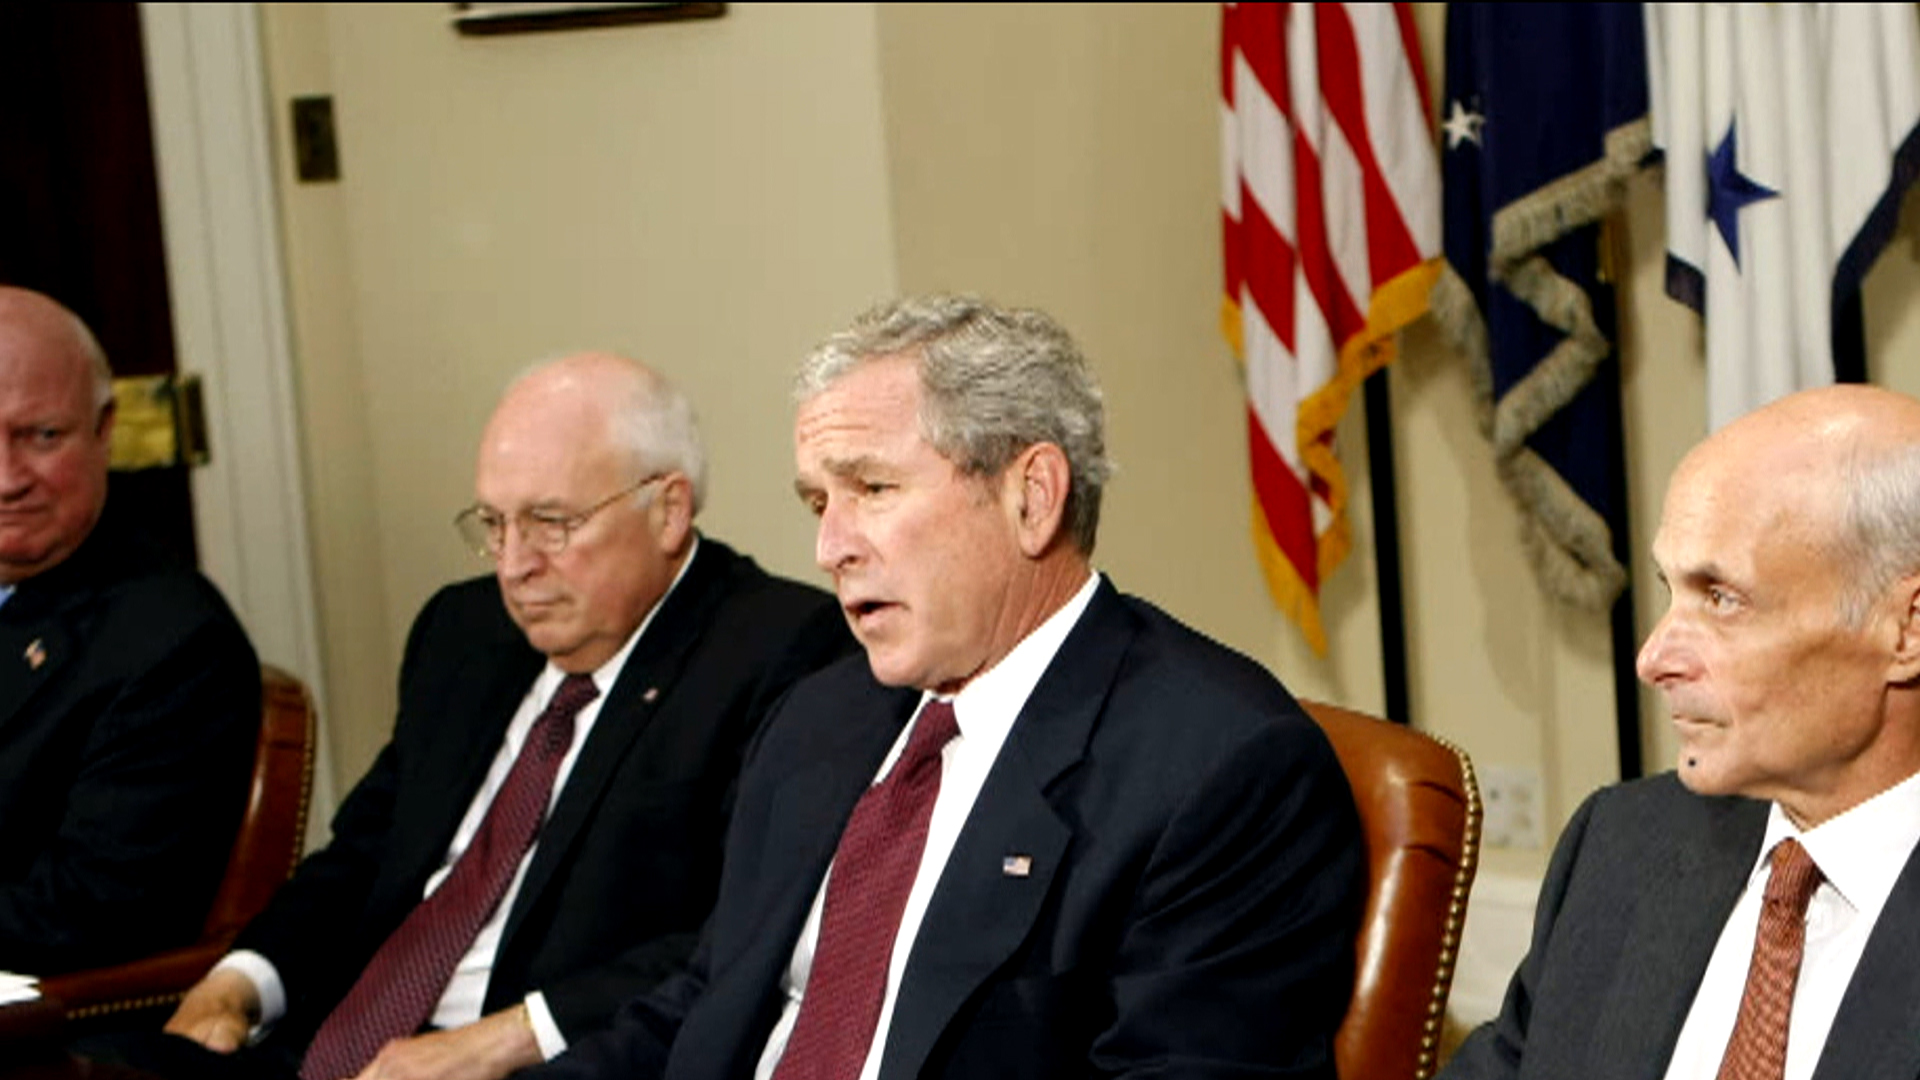 Inside the Bush, Cheney relationship